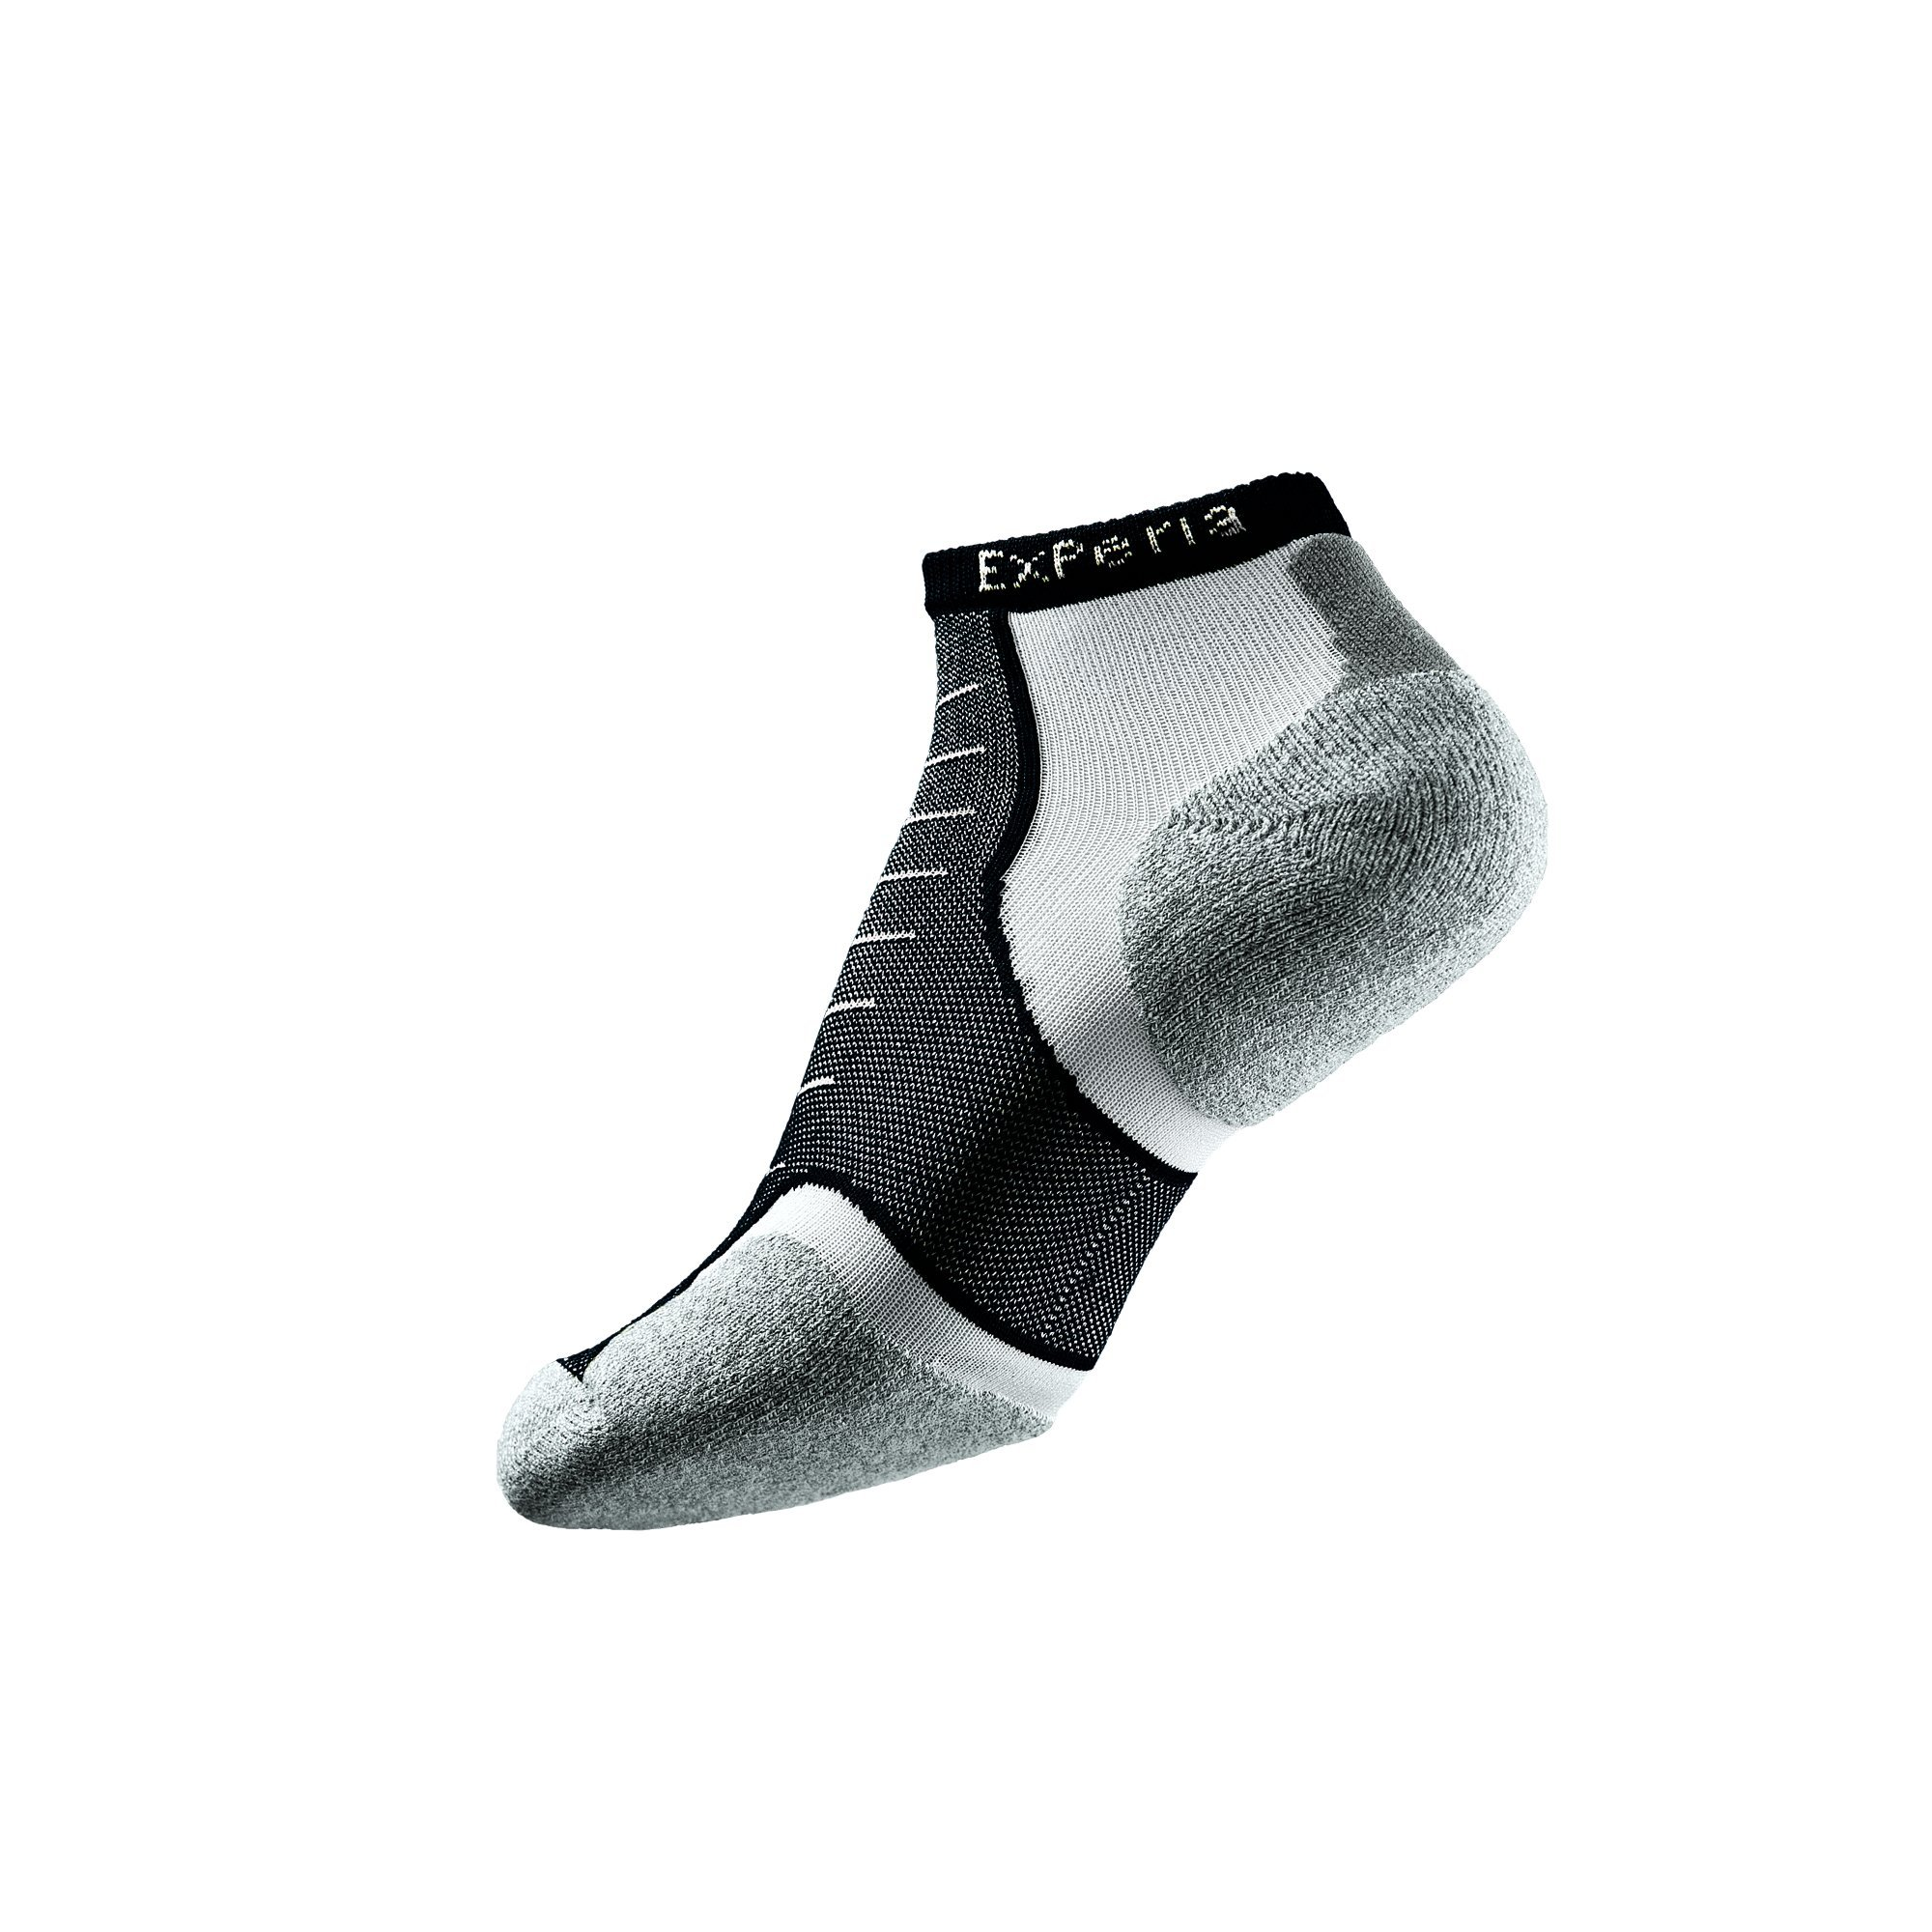 Thorlos Experia XCCU Thin Cushion Running Low Cut Sock, Black On White, L by Thorlos Experia